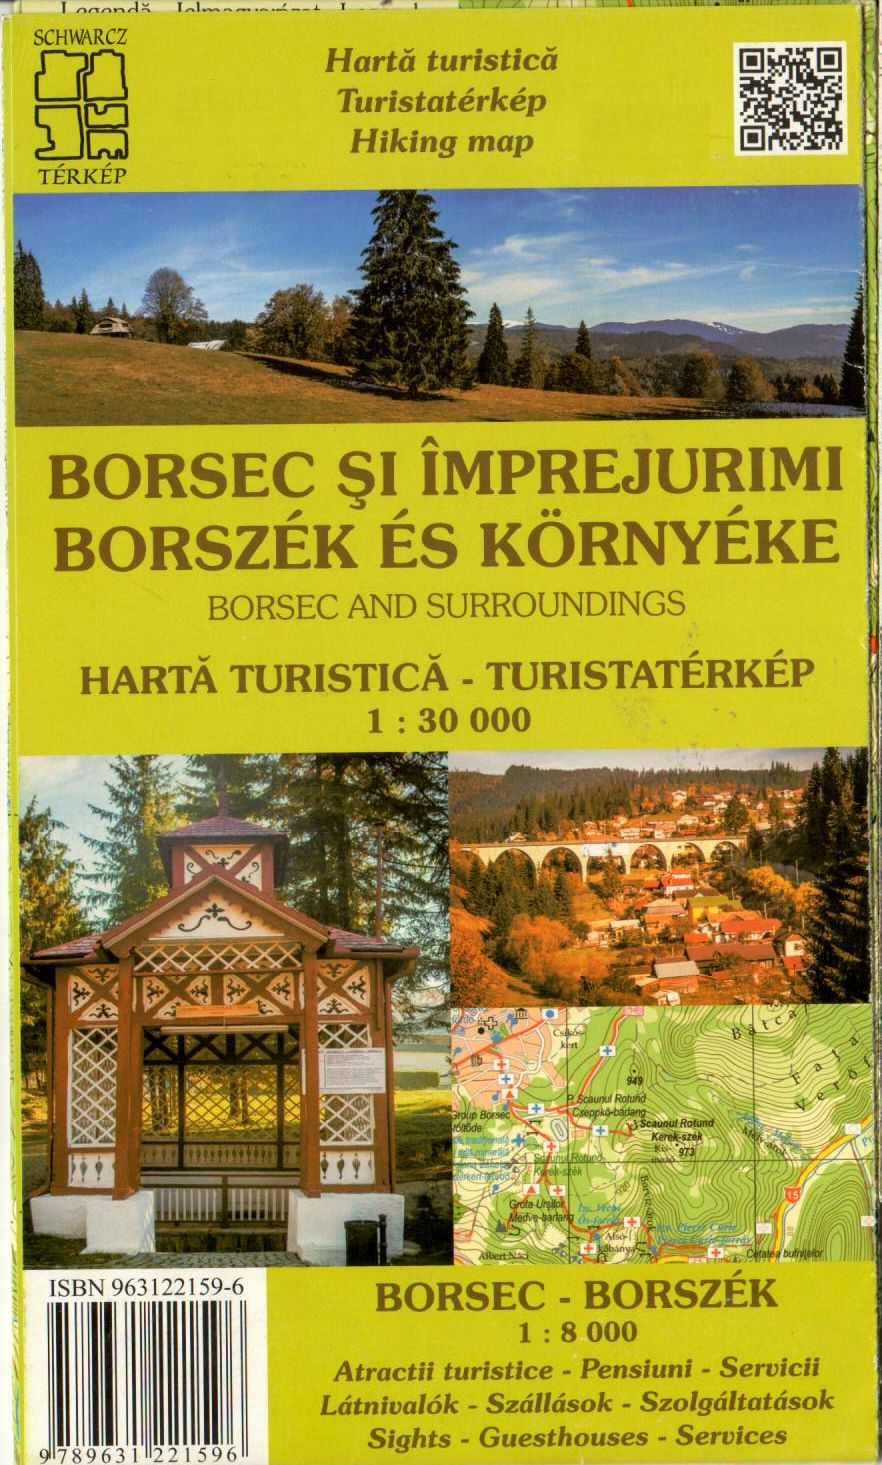 With a city map of Borsec 1:8.000